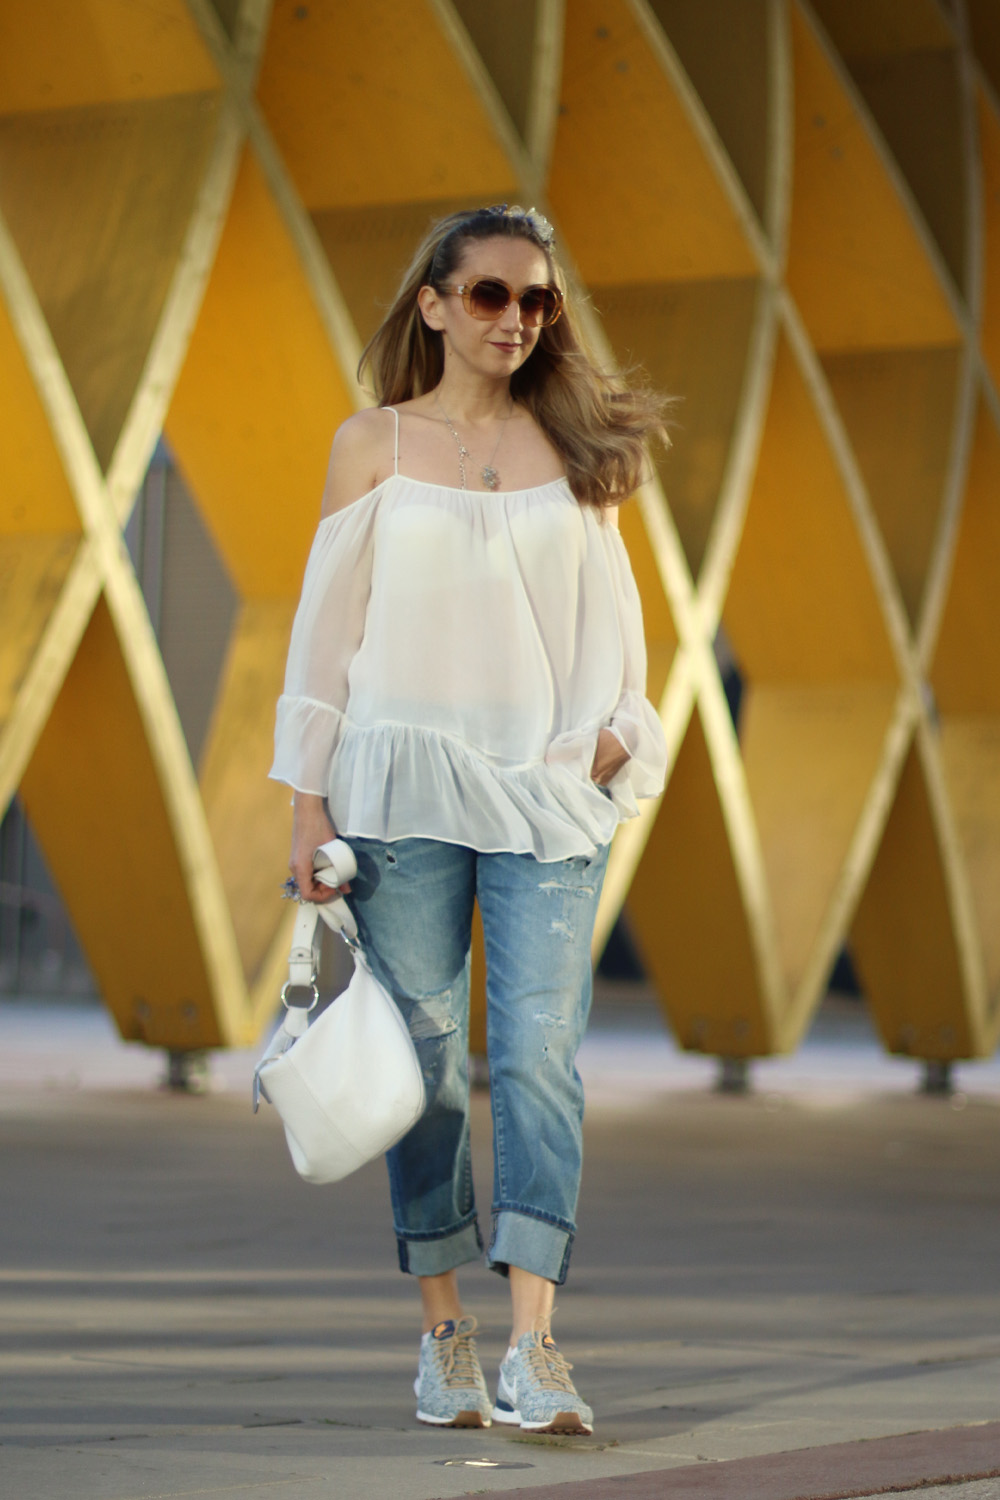 colourclub-fashionblog-outfit-off-the-shoulder-top-destroyed-jeans-furla-bag-austria-center4